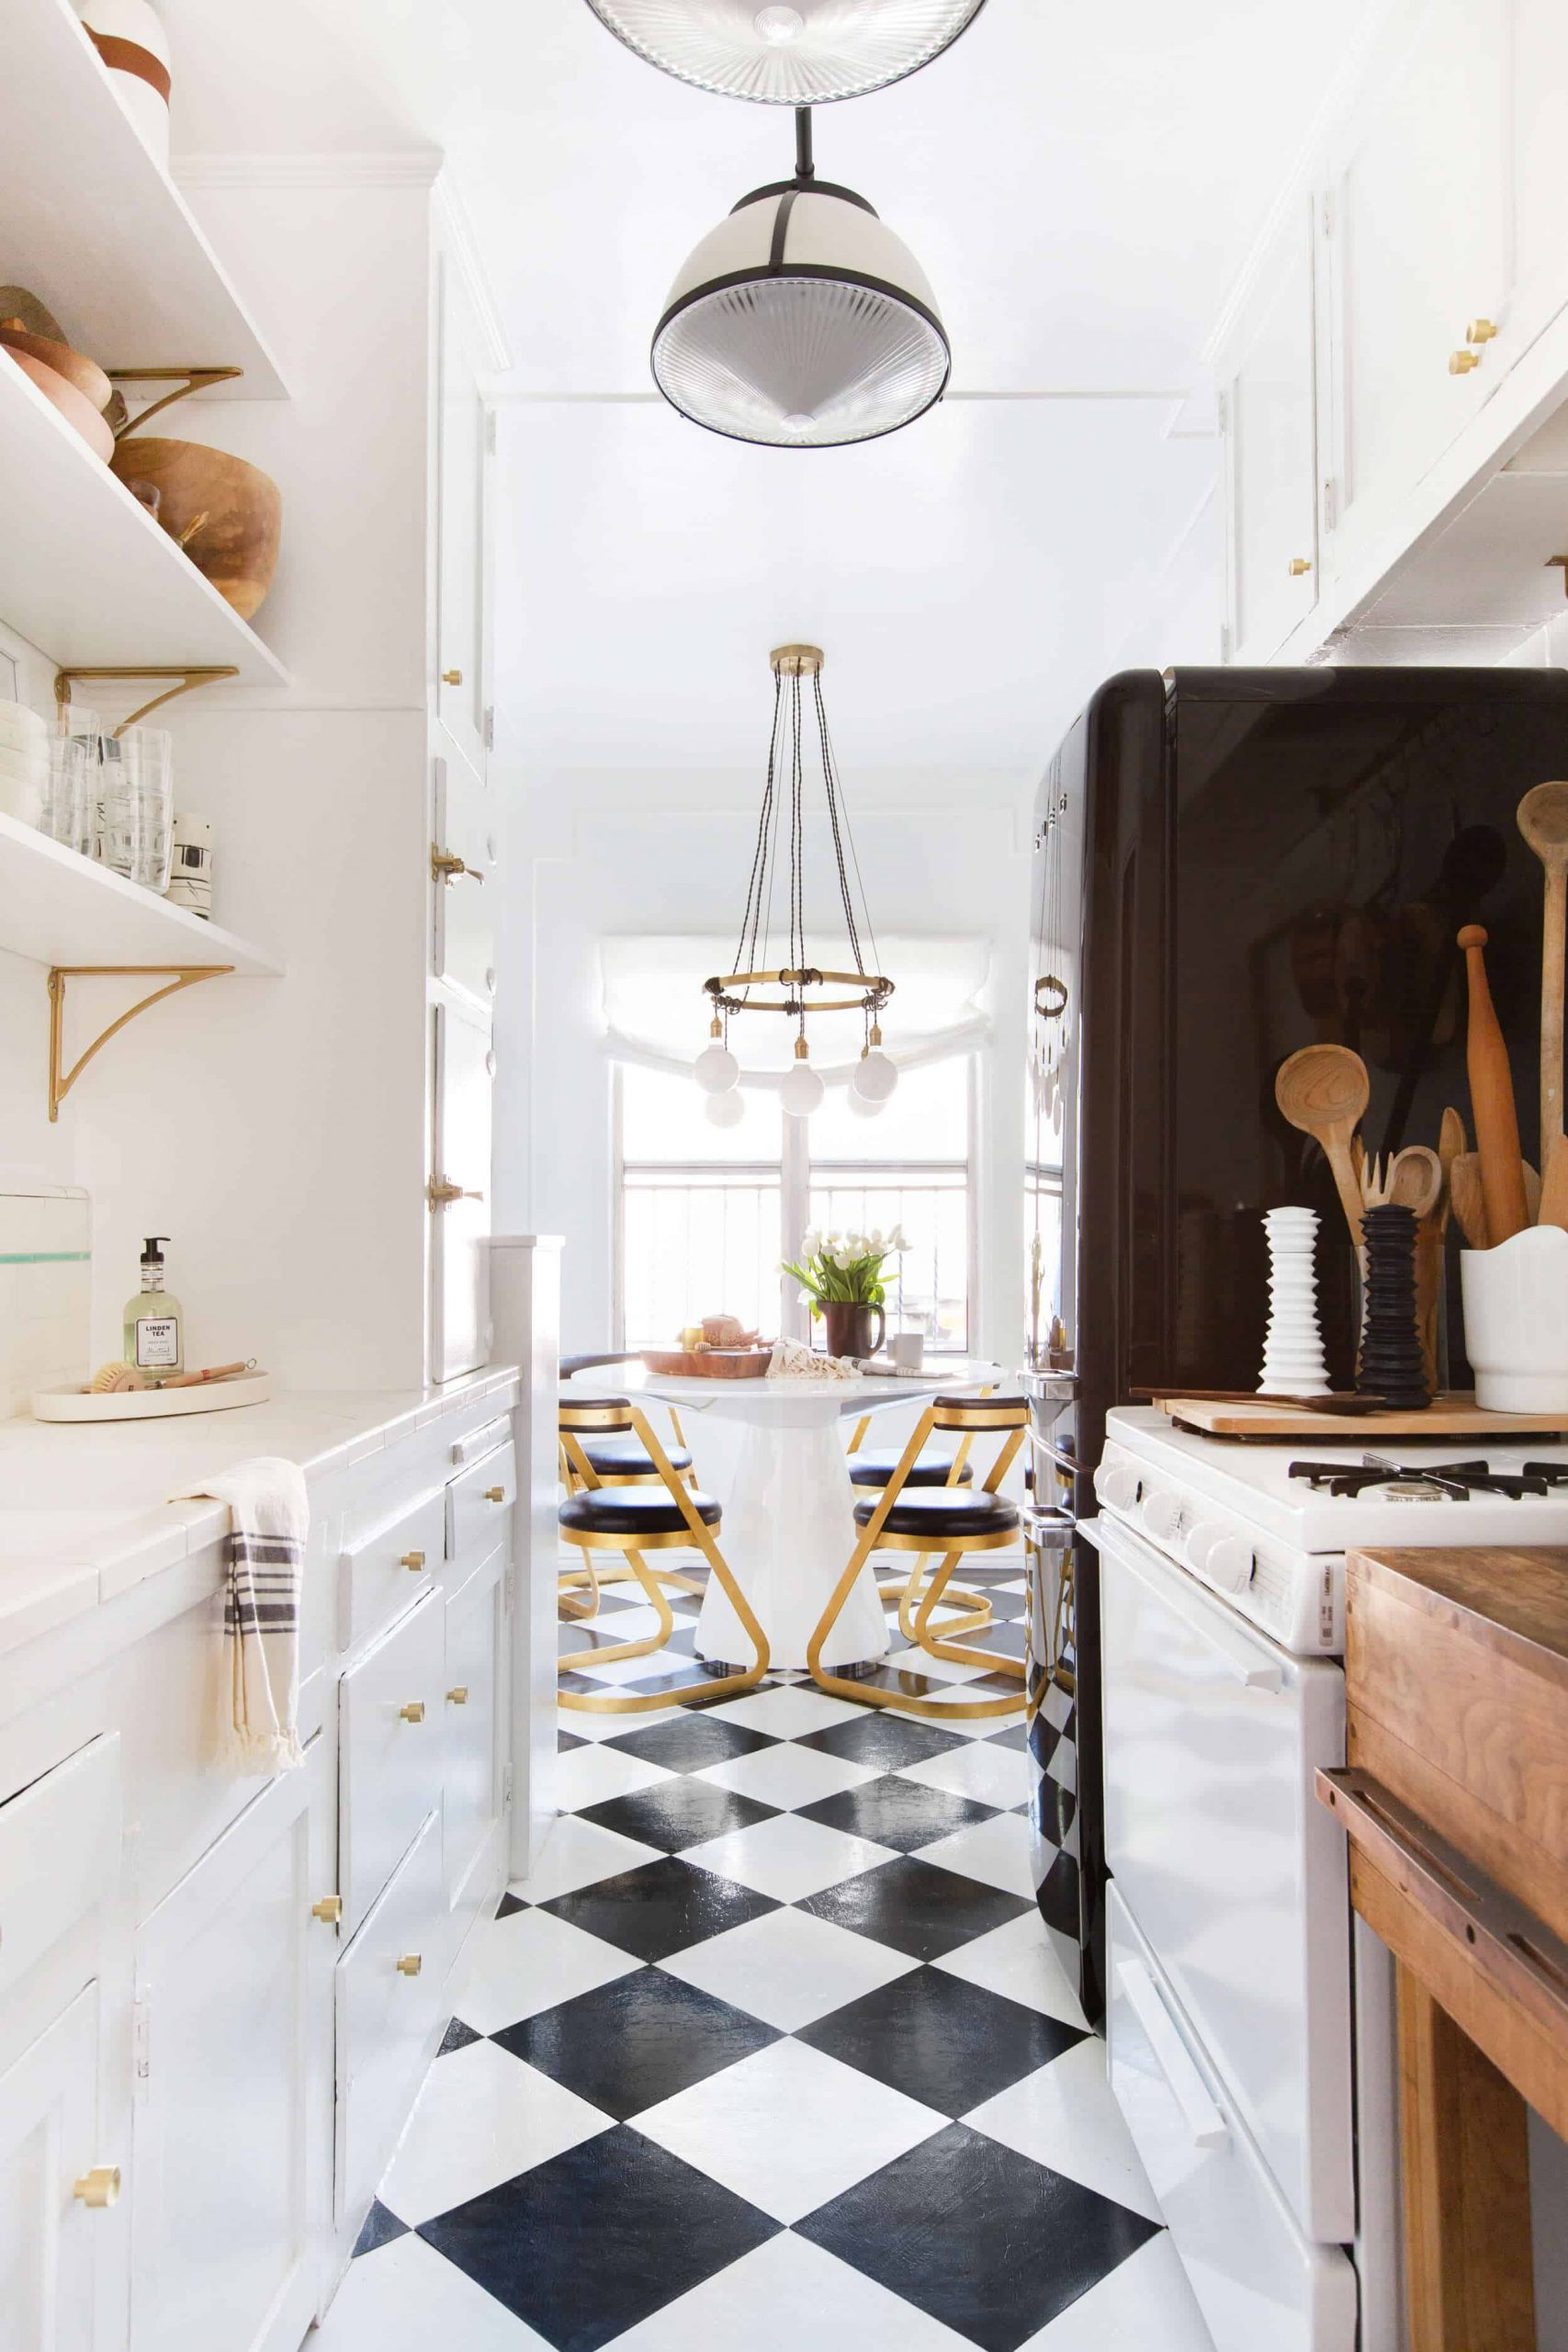 Vintage Kitchen Ideas That Inspire A Switch To Mid-Century Style_2